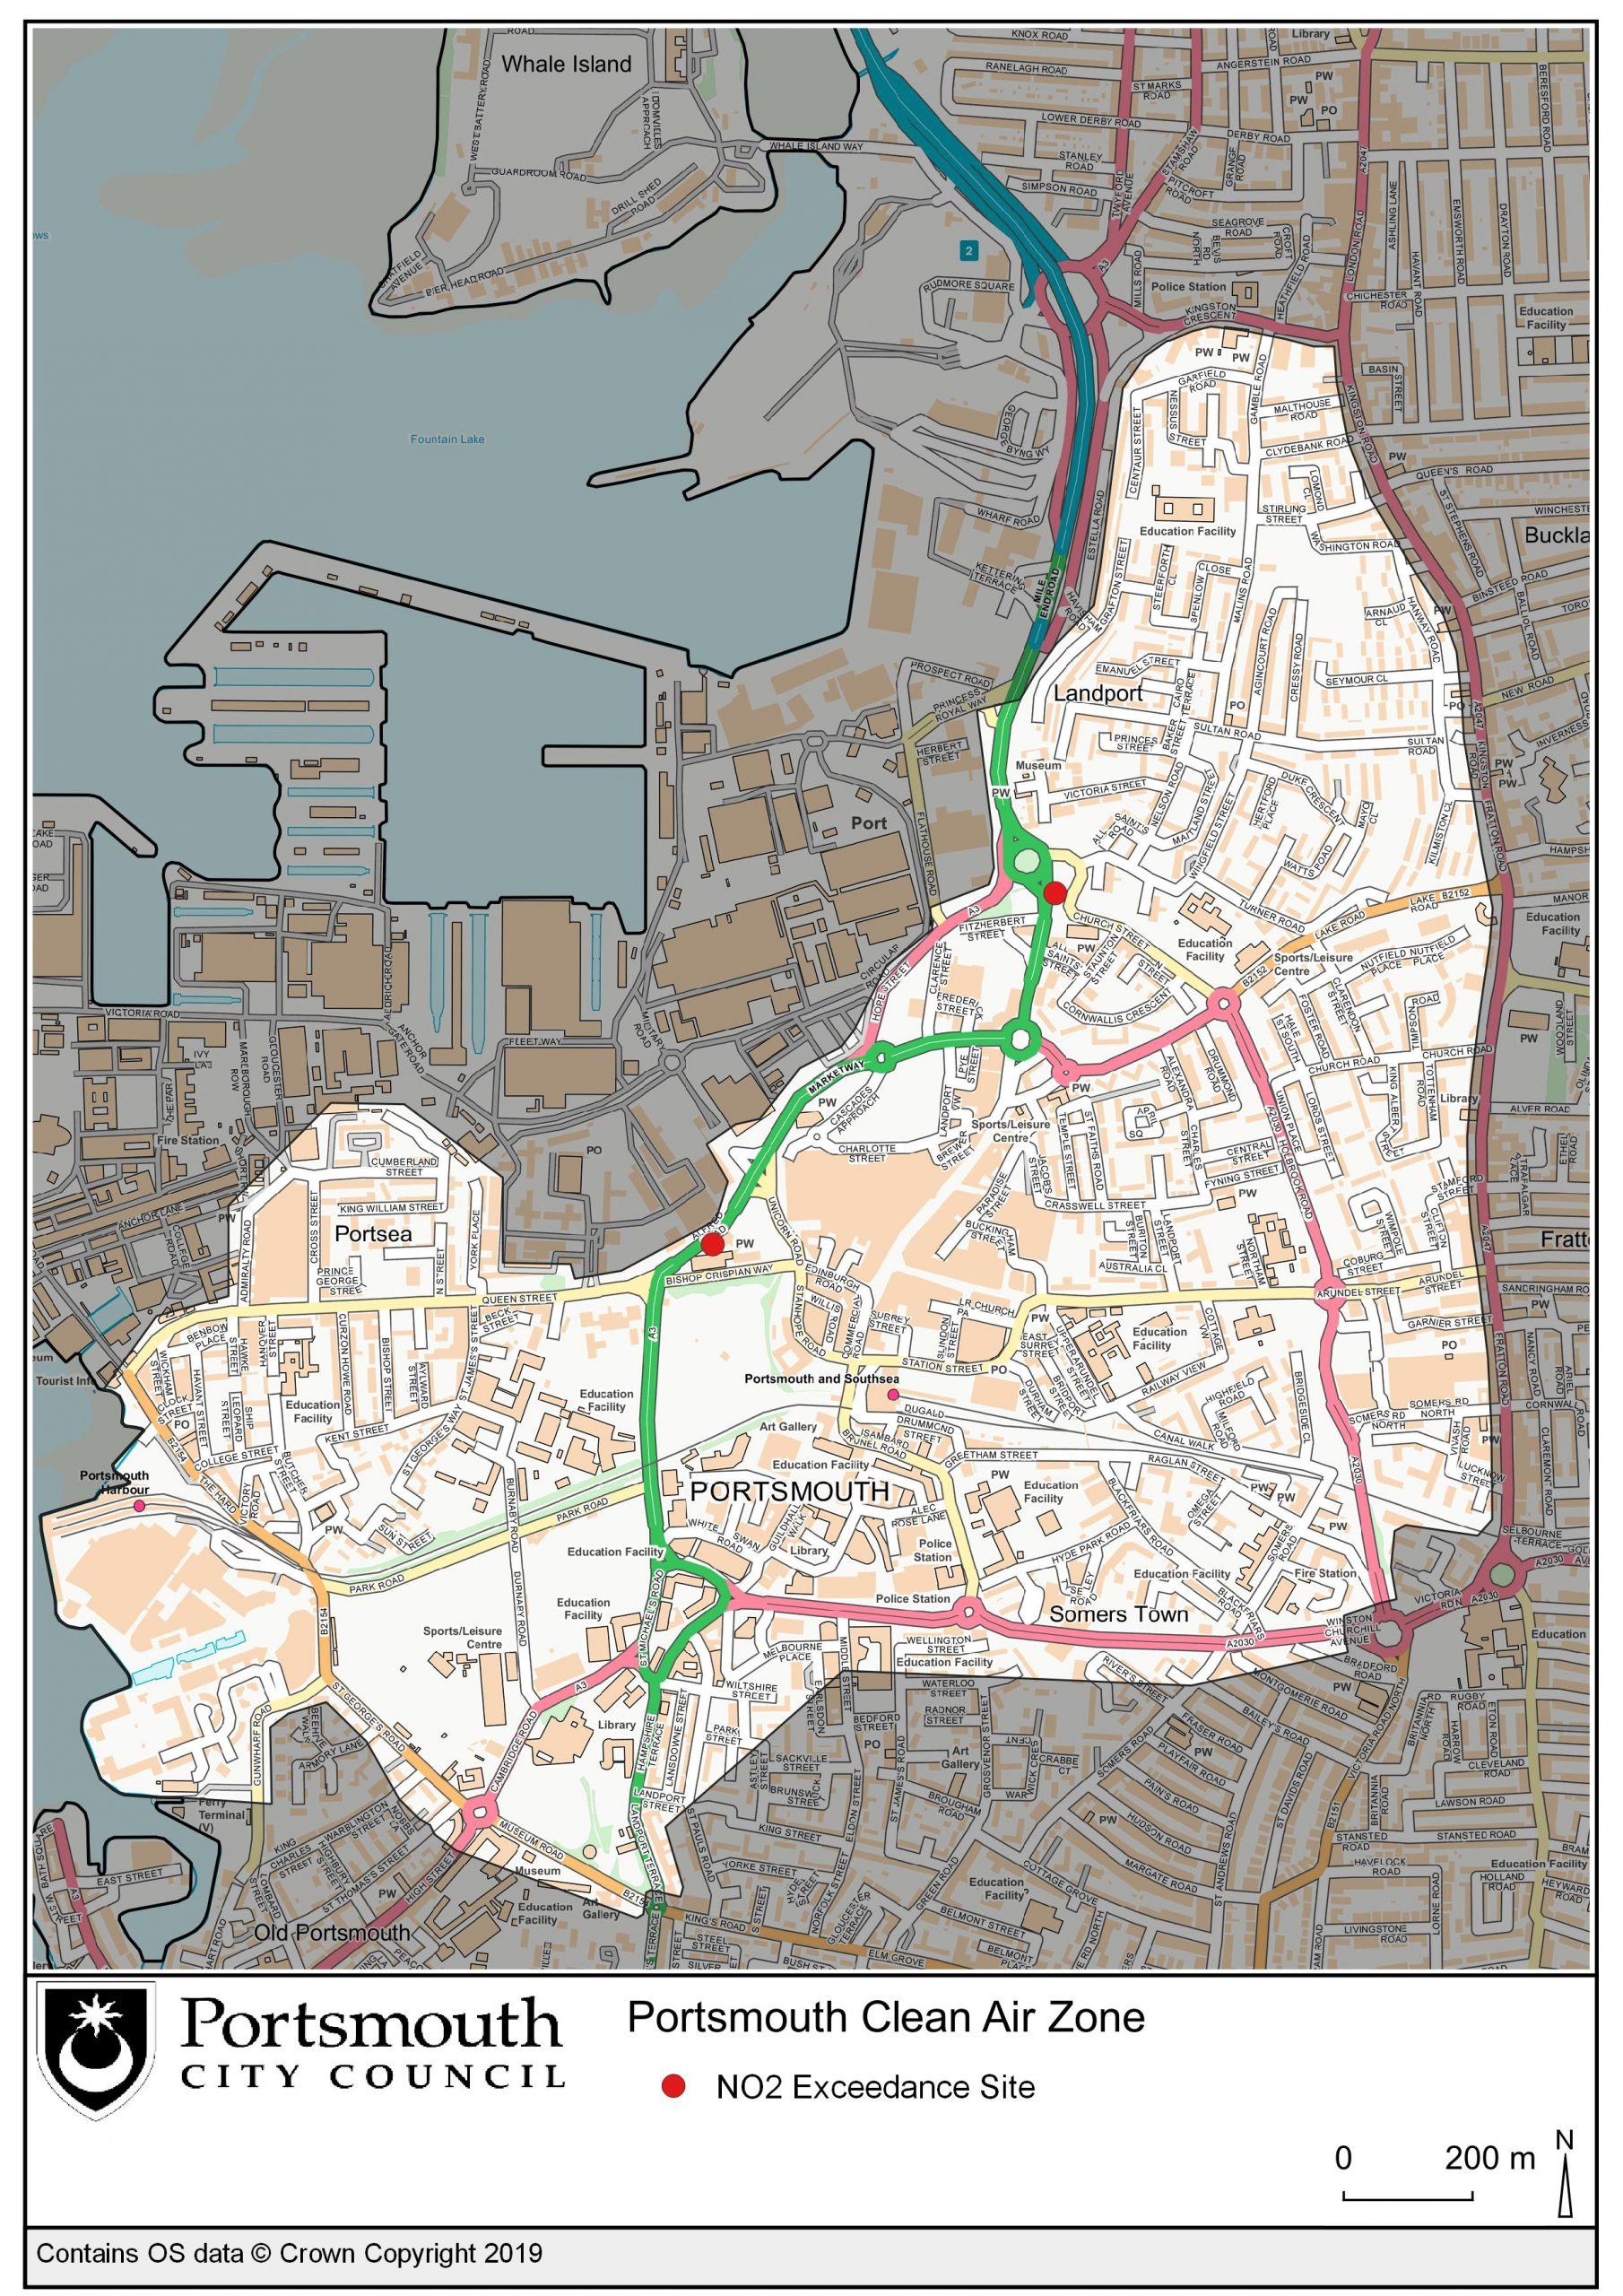 Map to show the Clean Air Zone boundary and NO2 Exceedance Sites in Portsmouth